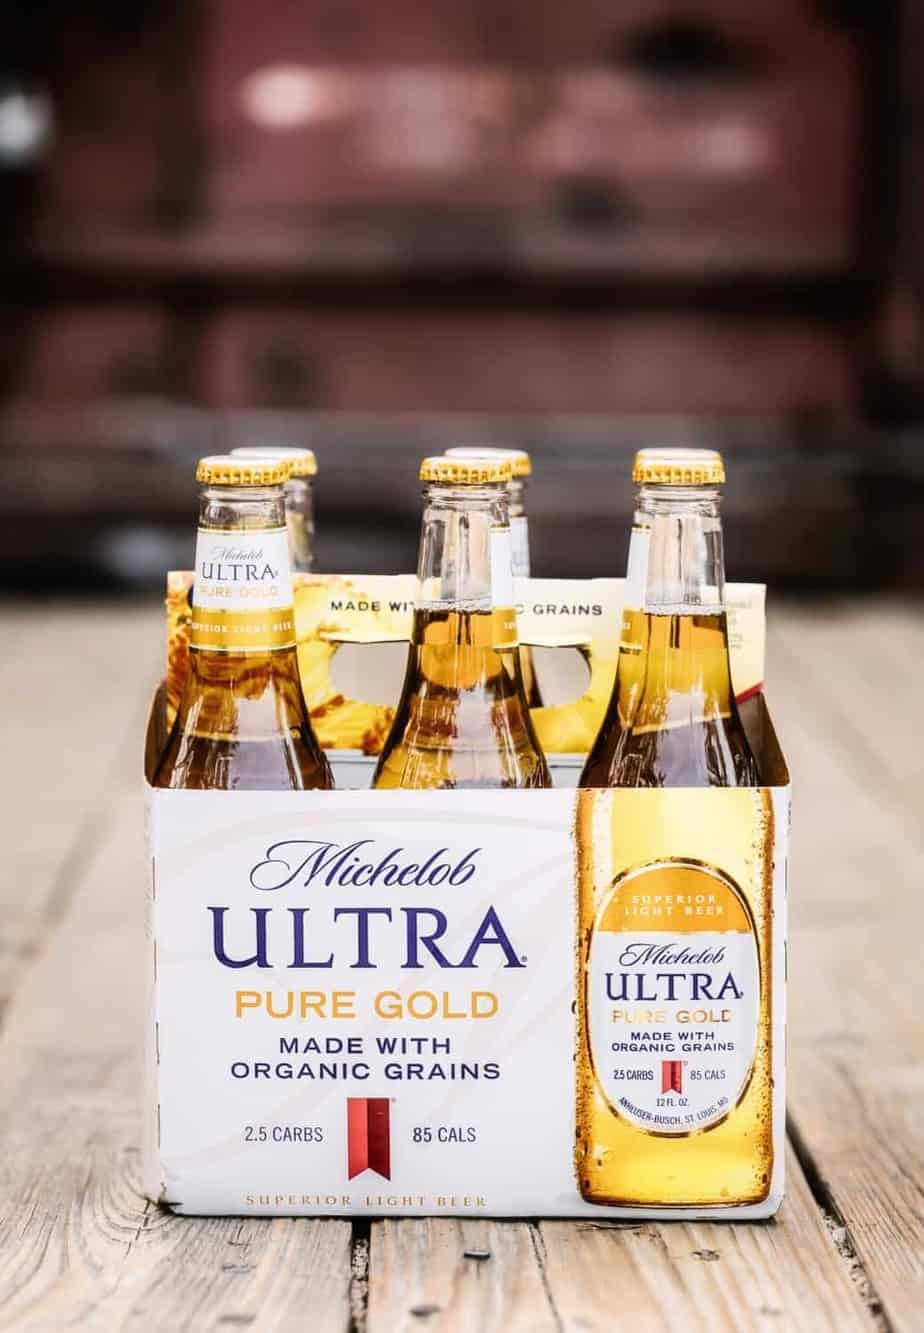 Michelob ULTRA Pure Gold: Live Life to the Fullest